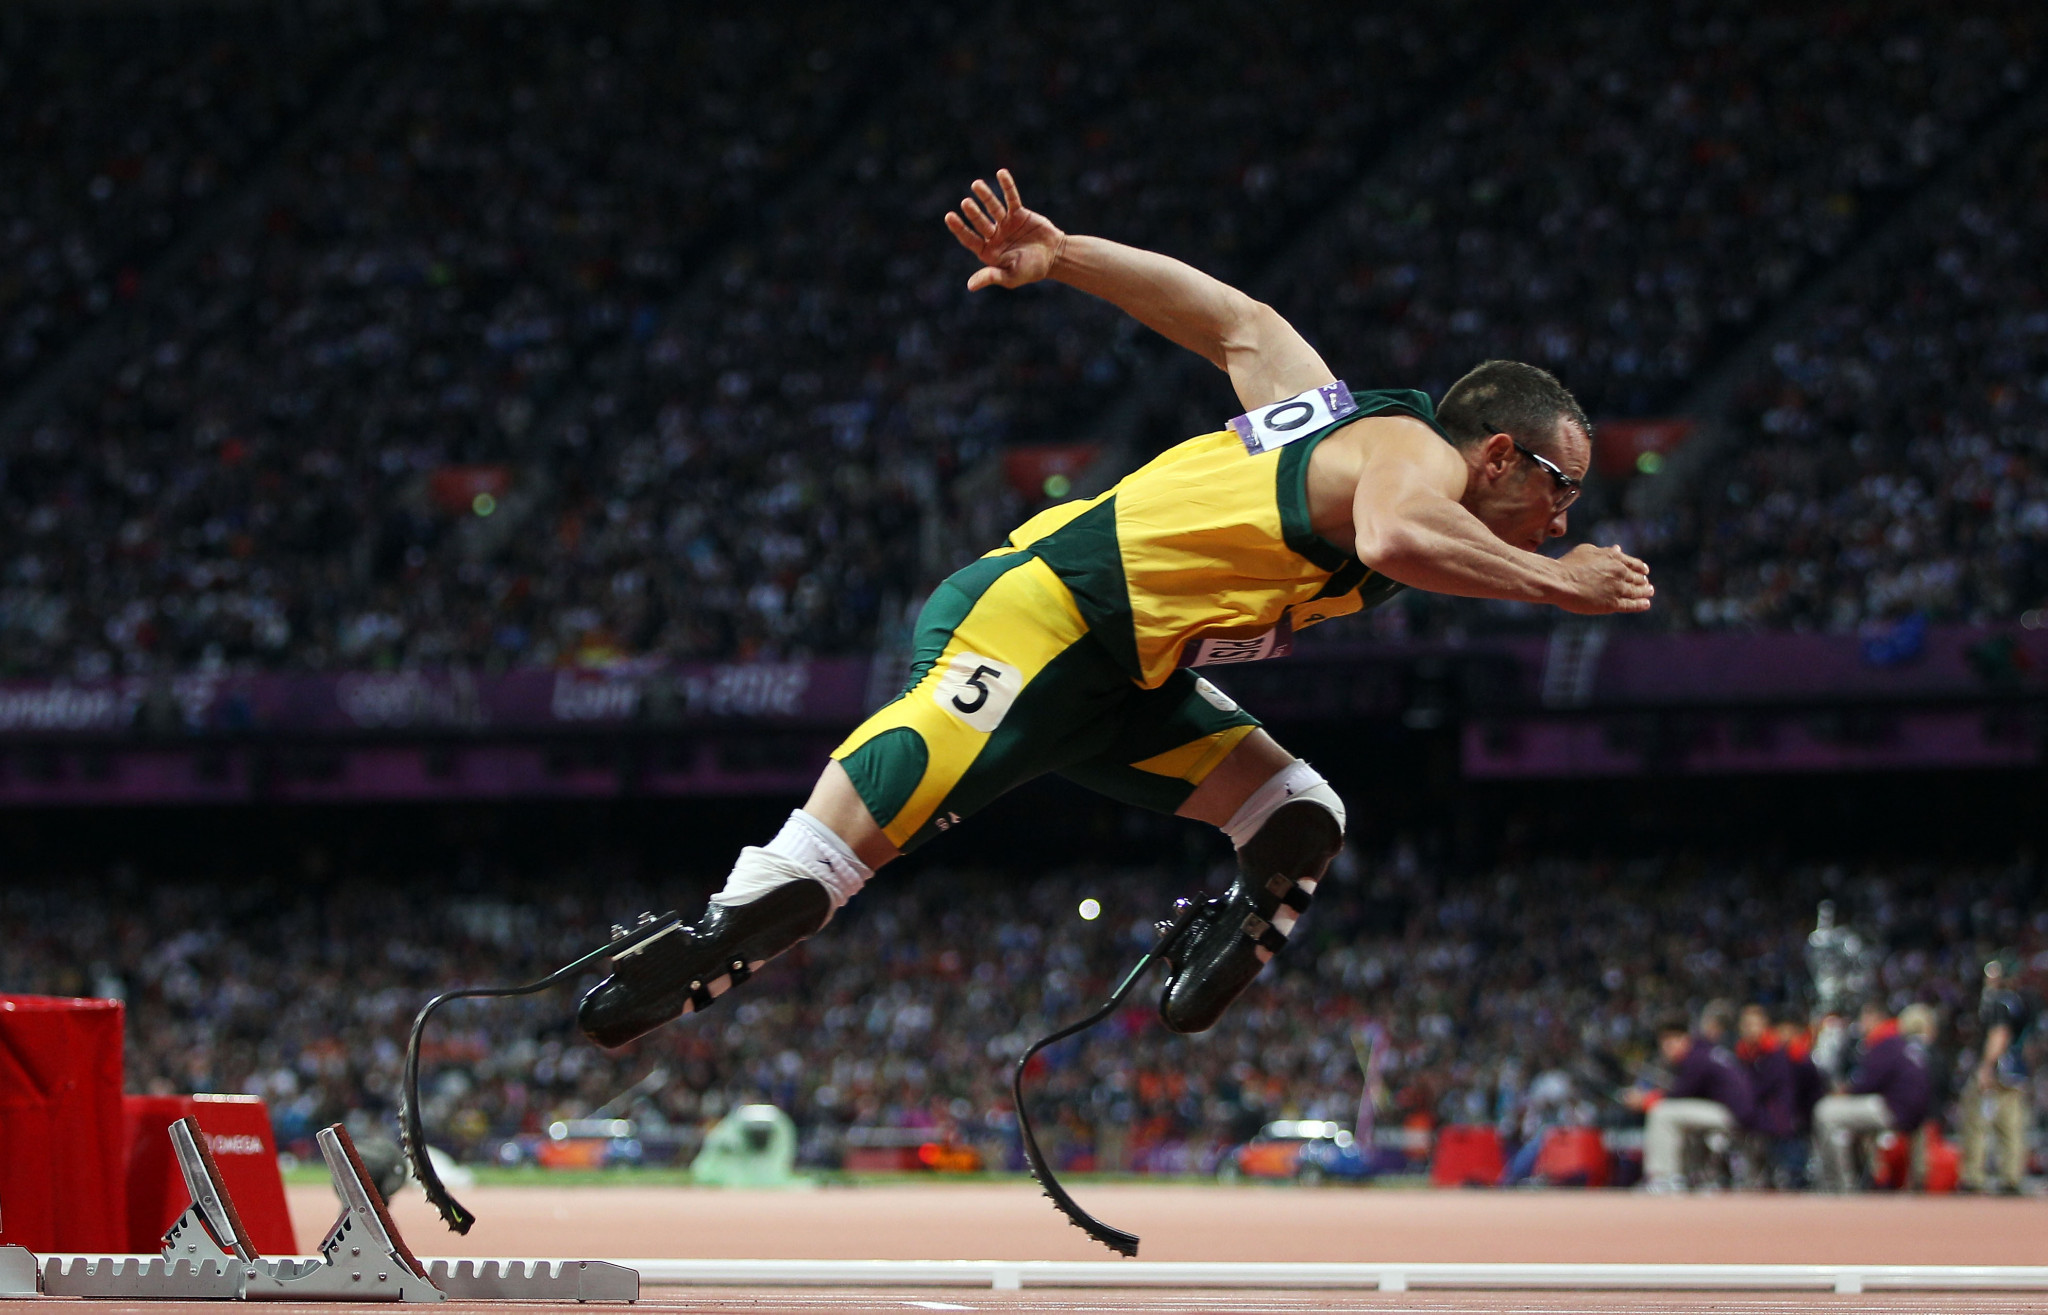 Pistorius appearance on London 2012 highlights sees BBC receive social media criticism